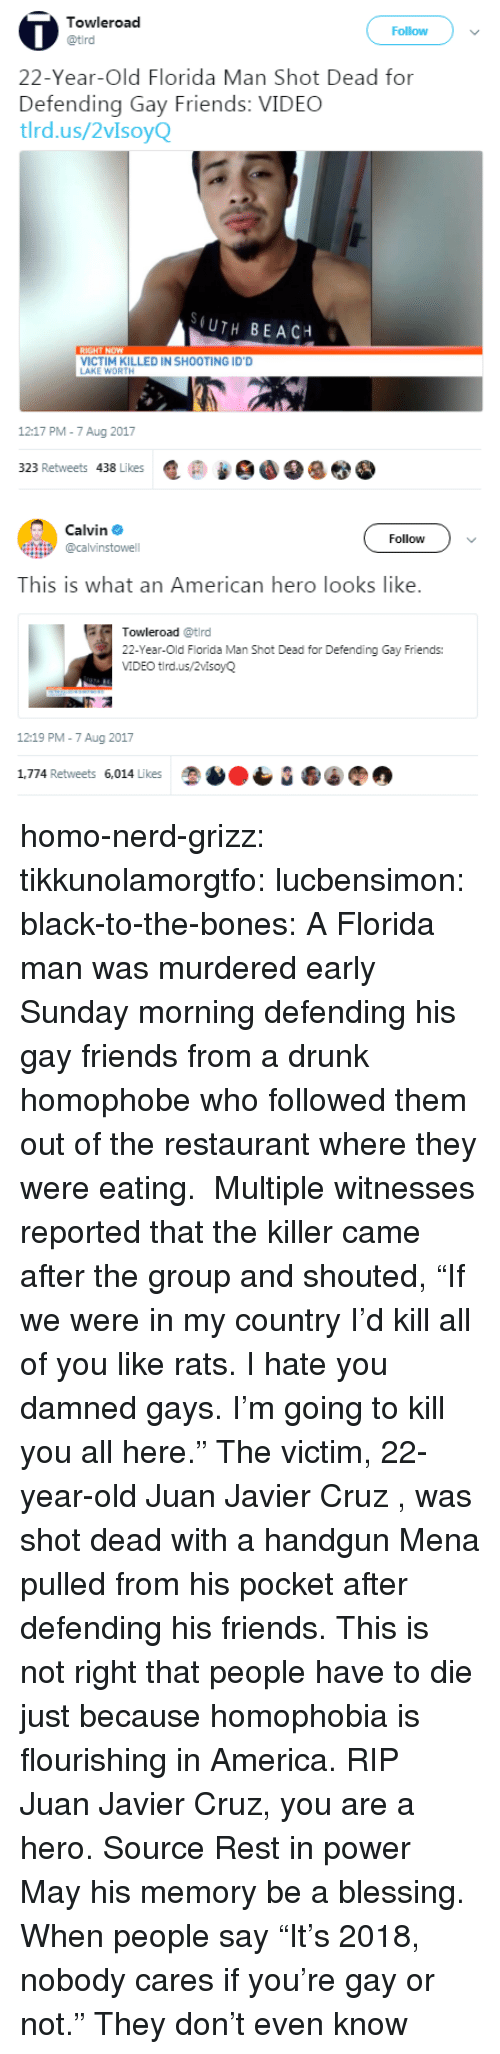 "America, Bones, and Drunk: Towleroad  Follow  22-Year-Old Florida Man Shot Dead for  Defending Gay Friends: VIDEC  tlrd.us/2vIsoyQ  (UTH BEACH  VICTIM KILLED IN SHOOTING ID'D  AKE WORTH  1217 PM-7 Aug 2017  323 Retweets 438 Likes匿@   Calvin Φ  @calvinstowell  Follow  This is what an American hero looks like.  Towleroad @tird  22-Year-Old Florida Man Shot Dead for Defending Gay Friends:  VIDEO tird.us/2vlsoyQ  12:19 PM-7 Aug 2017  1,774 Retweets 6,014 Likes homo-nerd-grizz: tikkunolamorgtfo:  lucbensimon:  black-to-the-bones:     A Florida man was murdered early Sunday morning defending his gay friends from a drunk homophobe who followed them out of the restaurant where they were eating.  Multiple witnesses reported that the killer came after the group and shouted, ""If we were in my country I'd kill all of you like rats. I hate you damned gays. I'm going to kill you all here.""   The victim, 22-year-old Juan Javier Cruz , was shot dead with a handgun Mena pulled from his pocket after defending his friends.   This is not right that people have to die just because homophobia is flourishing in America. RIP   Juan Javier Cruz, you are a hero. Source   Rest in power  May his memory be a blessing.   When people say ""It's 2018, nobody cares if you're gay or not."" They don't even know"